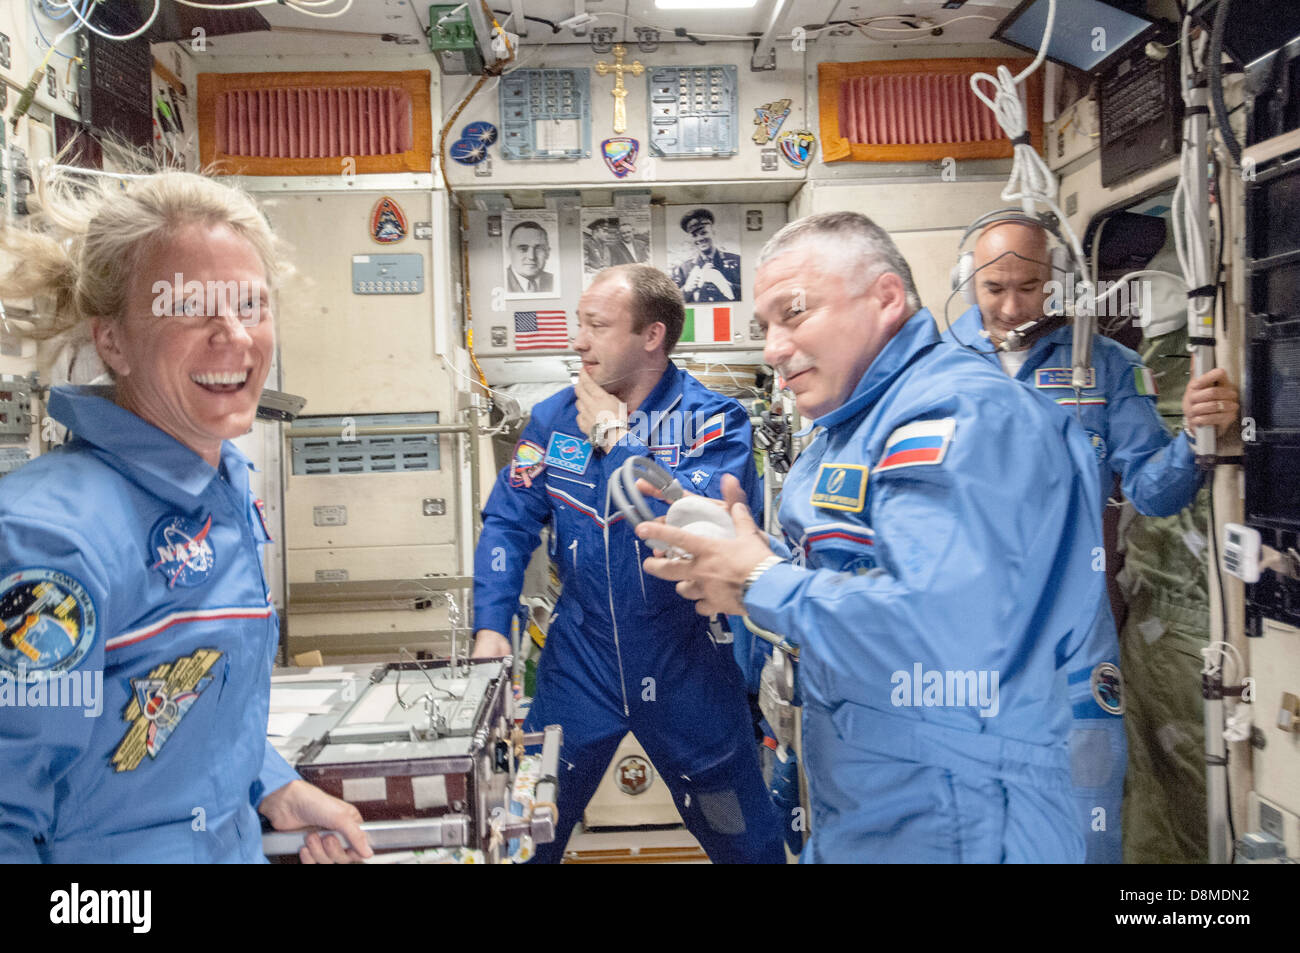 ISS Expedition 37 crew members are welcomed onboard the Zvezda service module by Expedition 36 crew members already - Stock Image